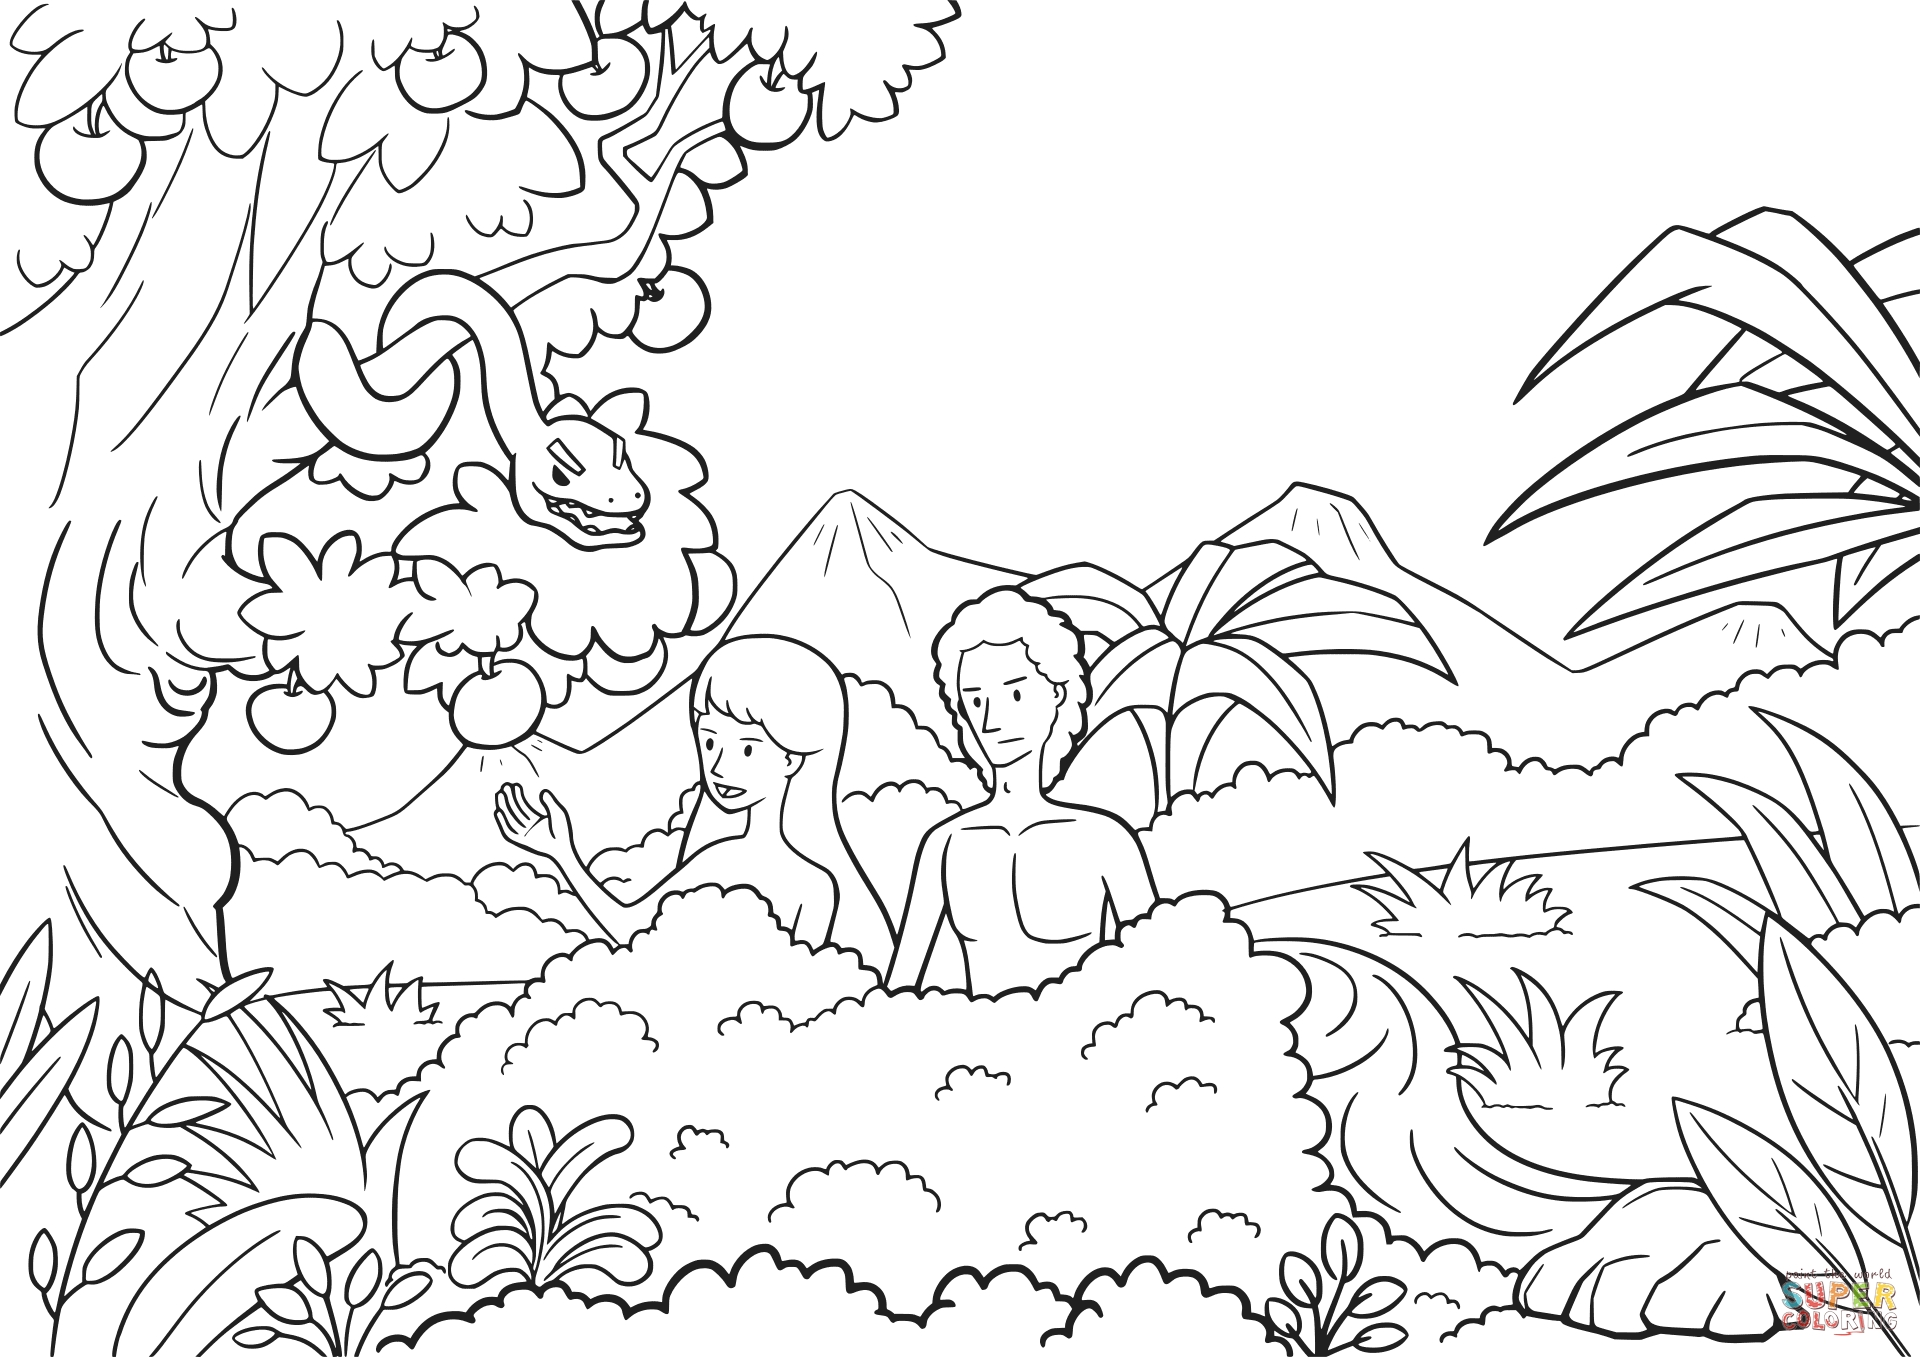 1920x1357 Unlimited Garden Of Eden Coloring Page Impress